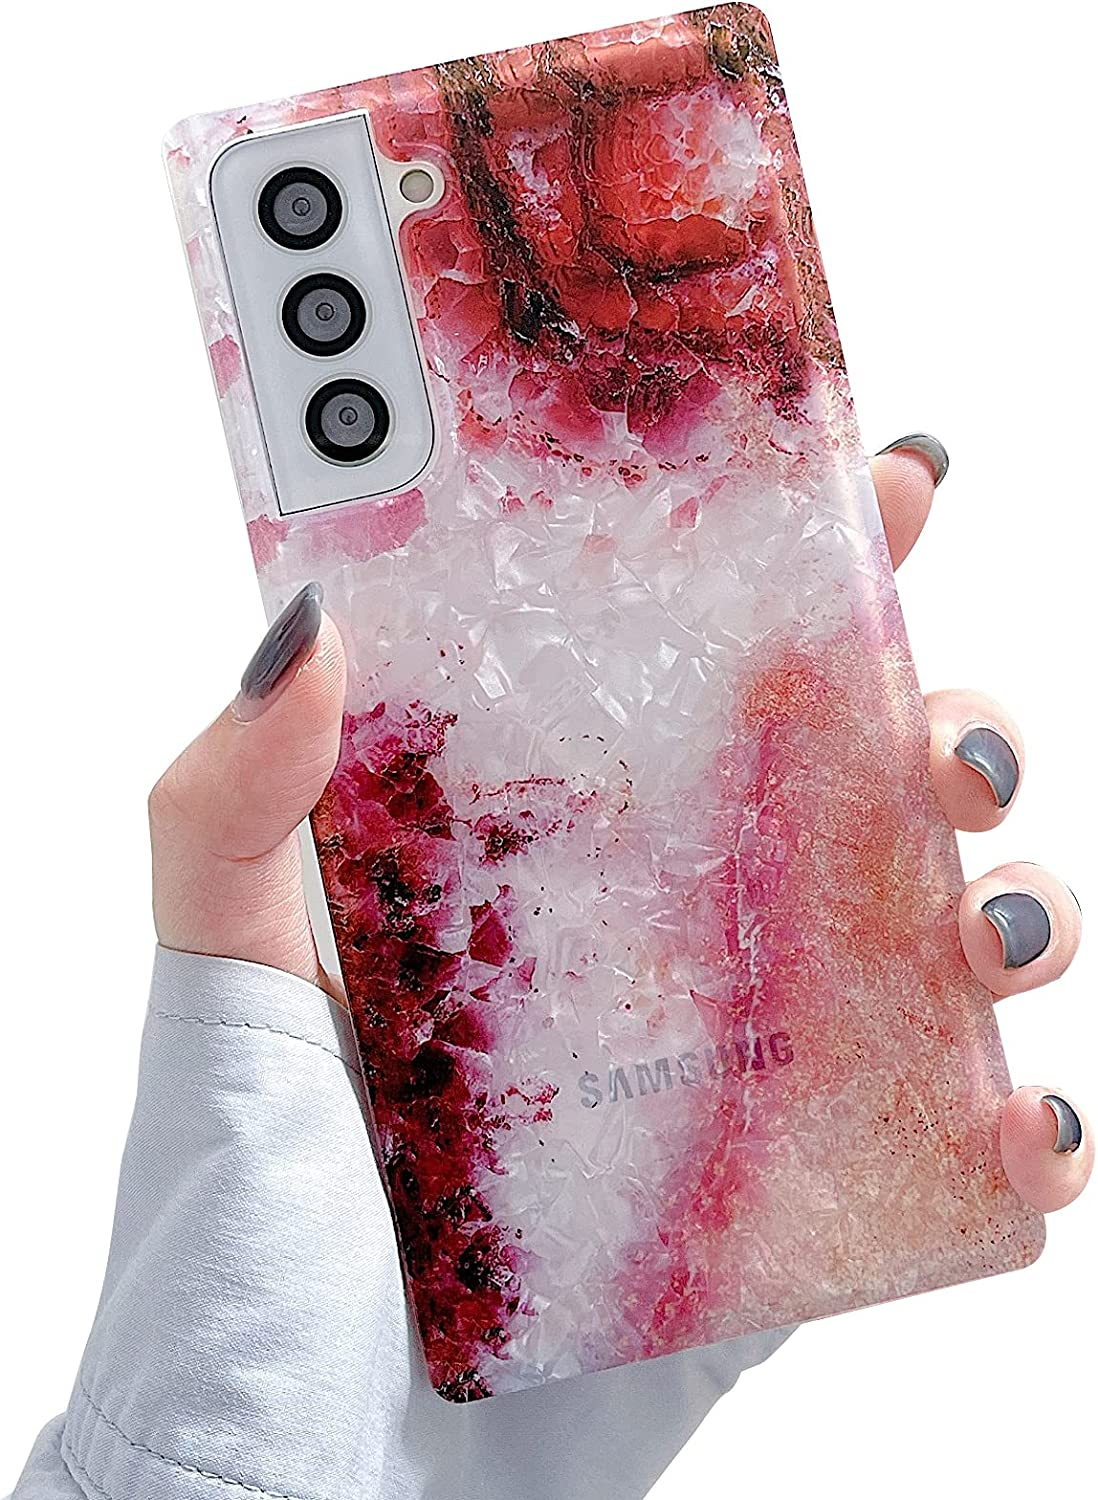 PHYLLA Square Red Gradient Marble Phone Case for Samsung Galaxy S21 Plus / S21+ 5G 6.7 inches Soft Silicone Shockproof Reinforced Corners